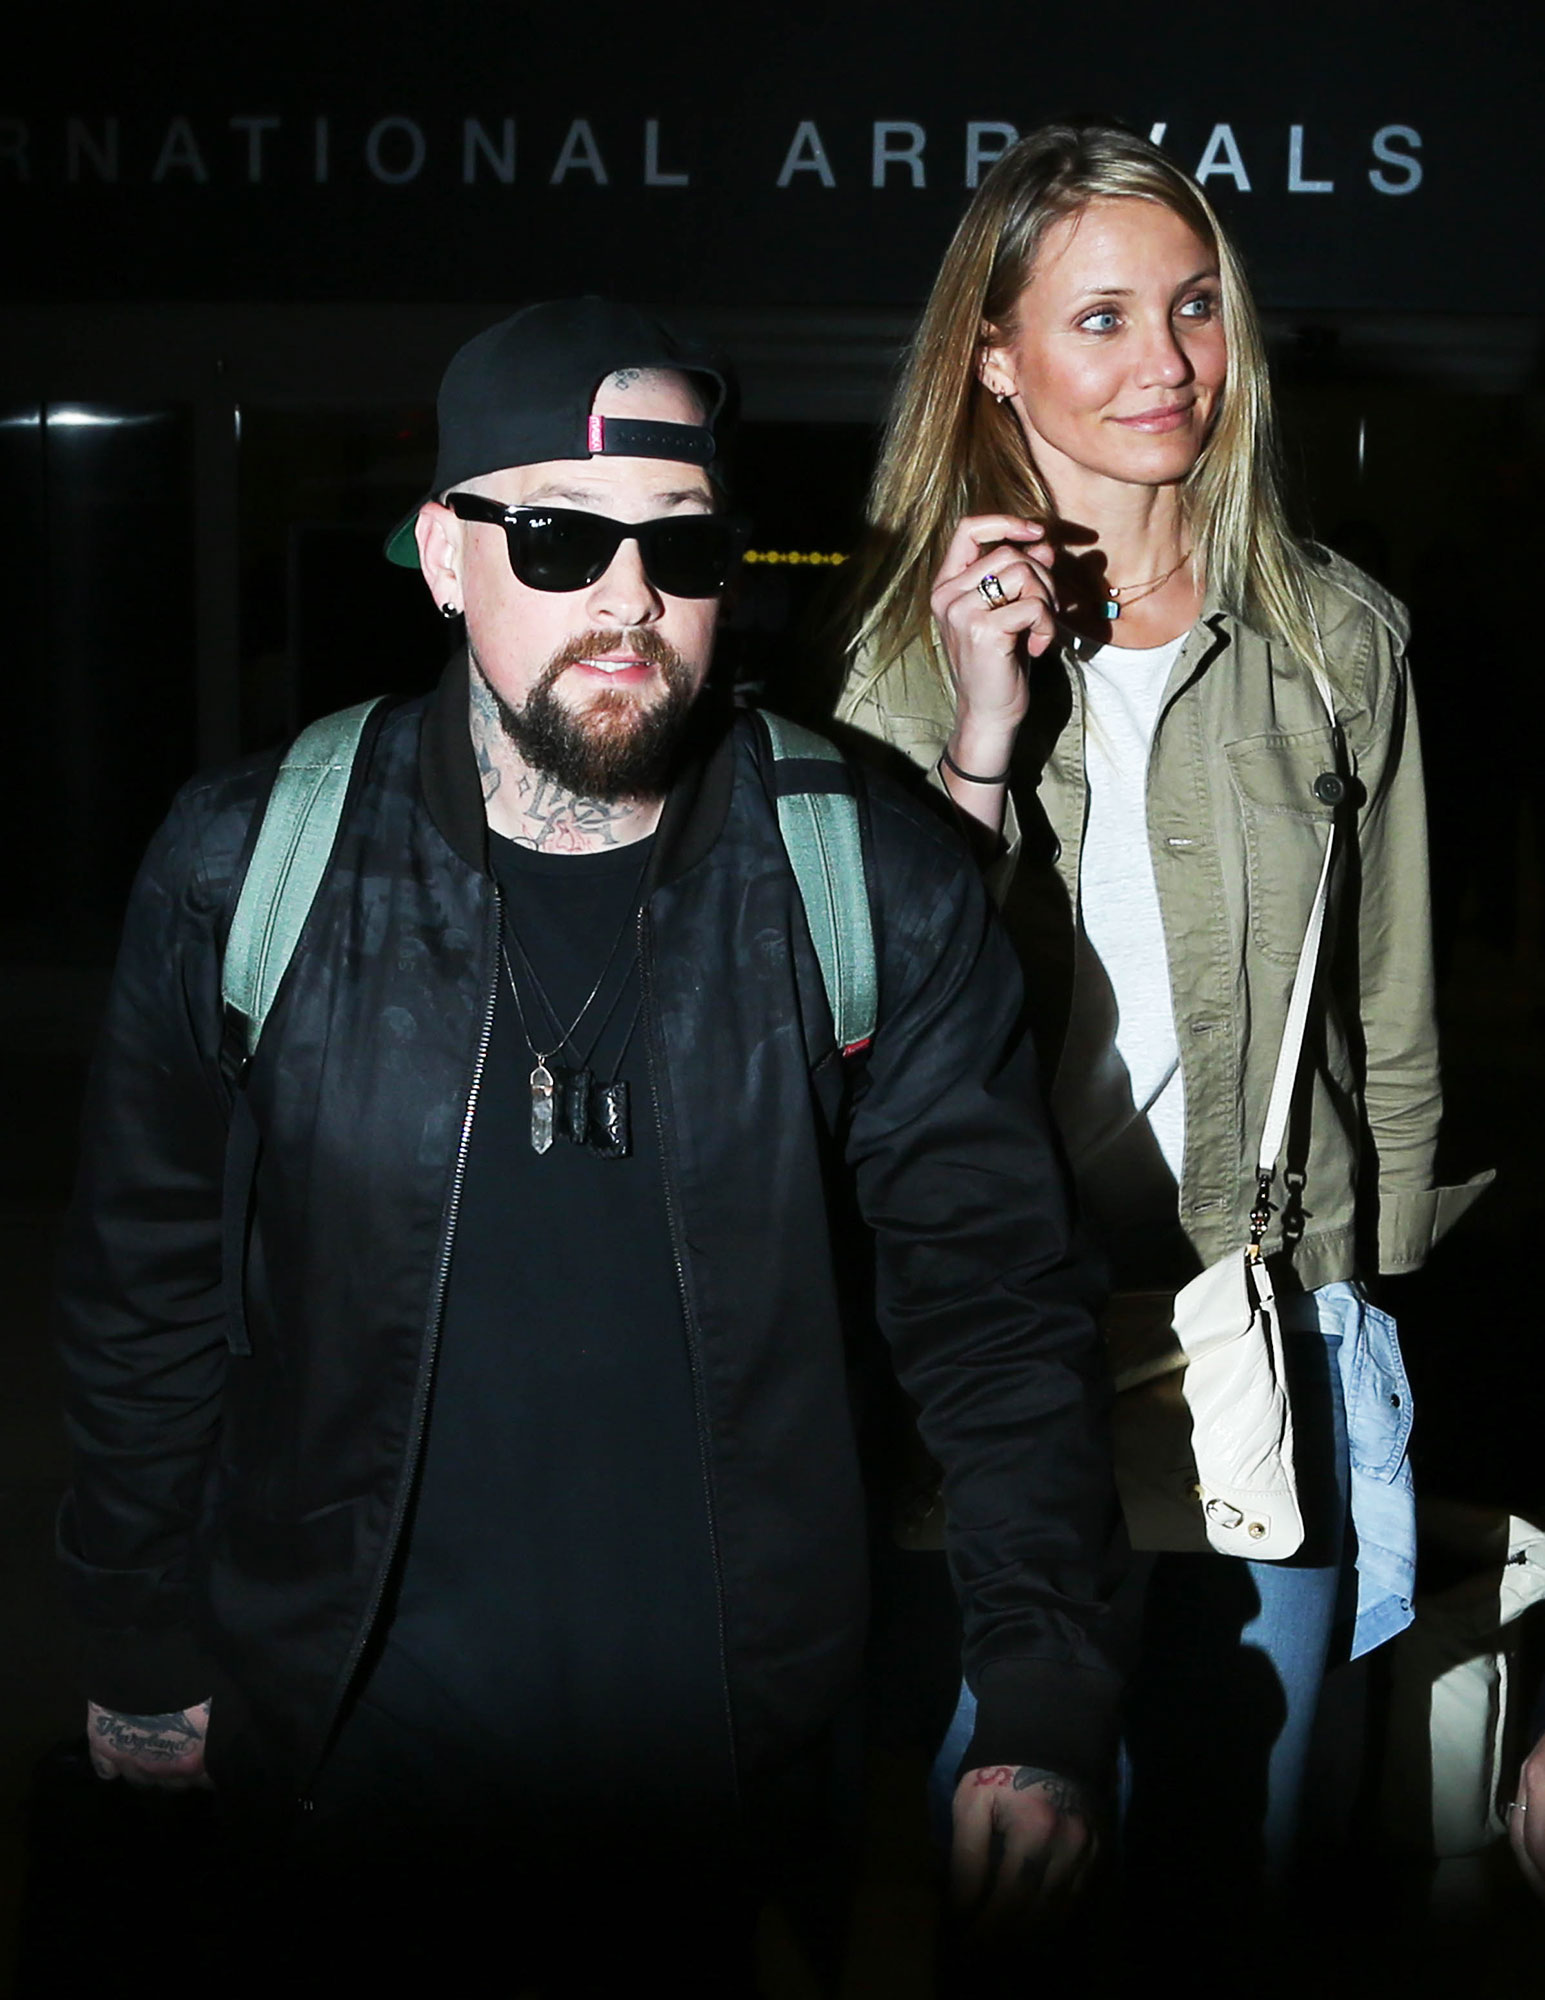 A Timeline of Cameron Diaz and Benji Madden's Private Relationship - Benji and Diaz tied the knot at the Annie star's home in Beverly Hills in early January 2015. Celebrity guests included Benji's twin, the Great News actress, Gwyneth Paltrow , Samantha Ronson and Robin Antin .